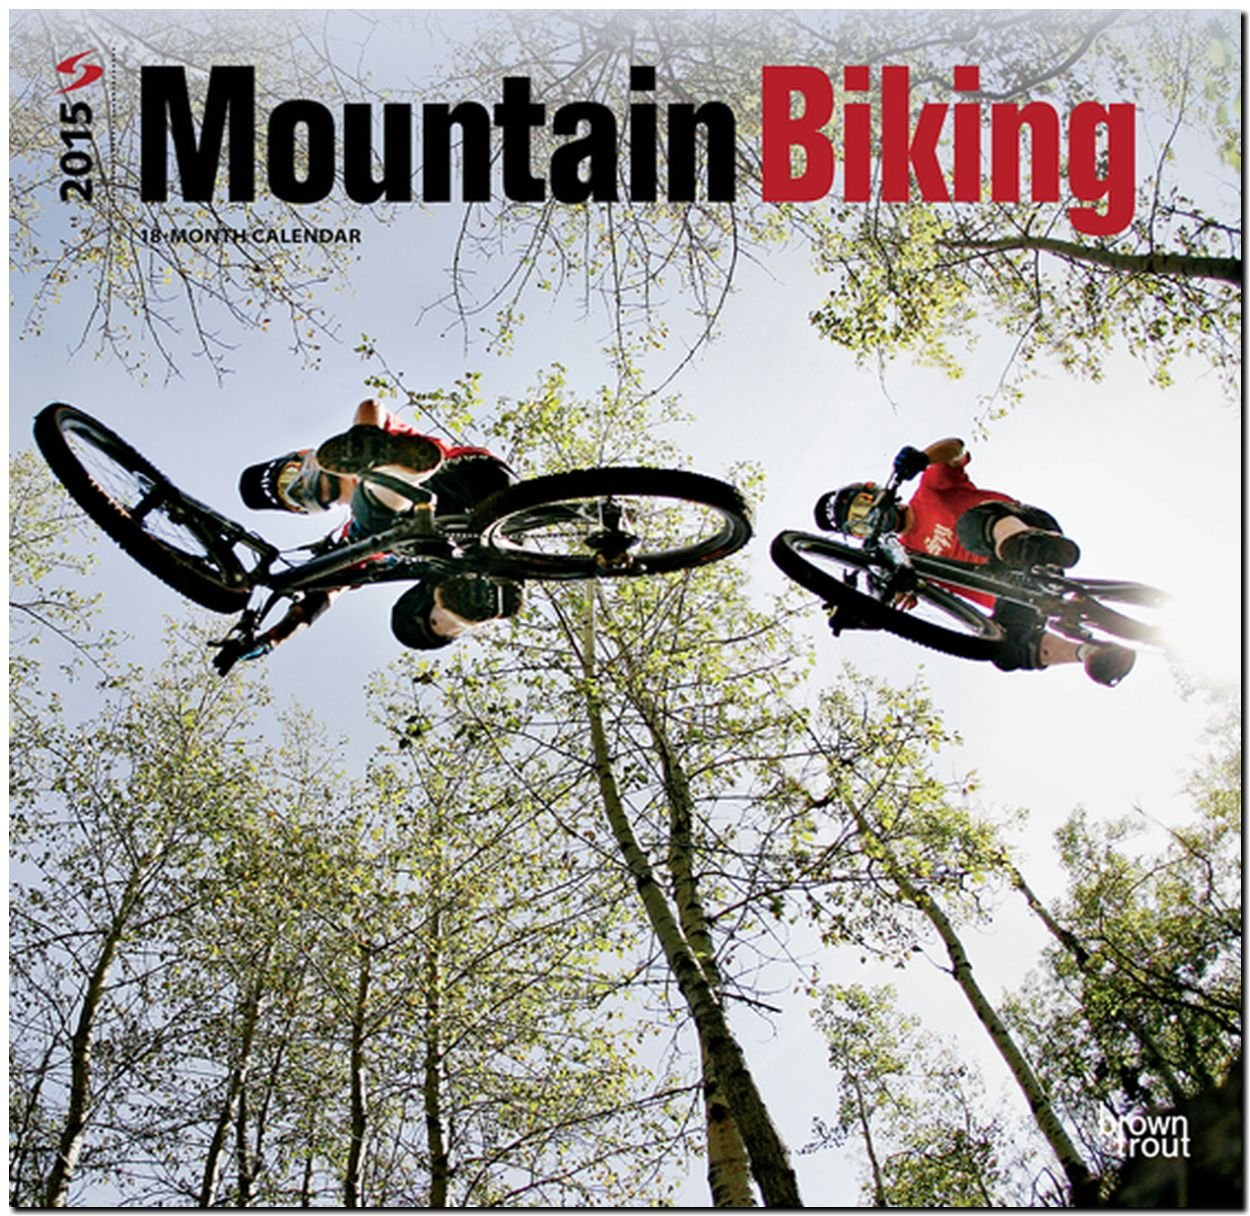 Mountain Biking 2015 - Mountainbiken